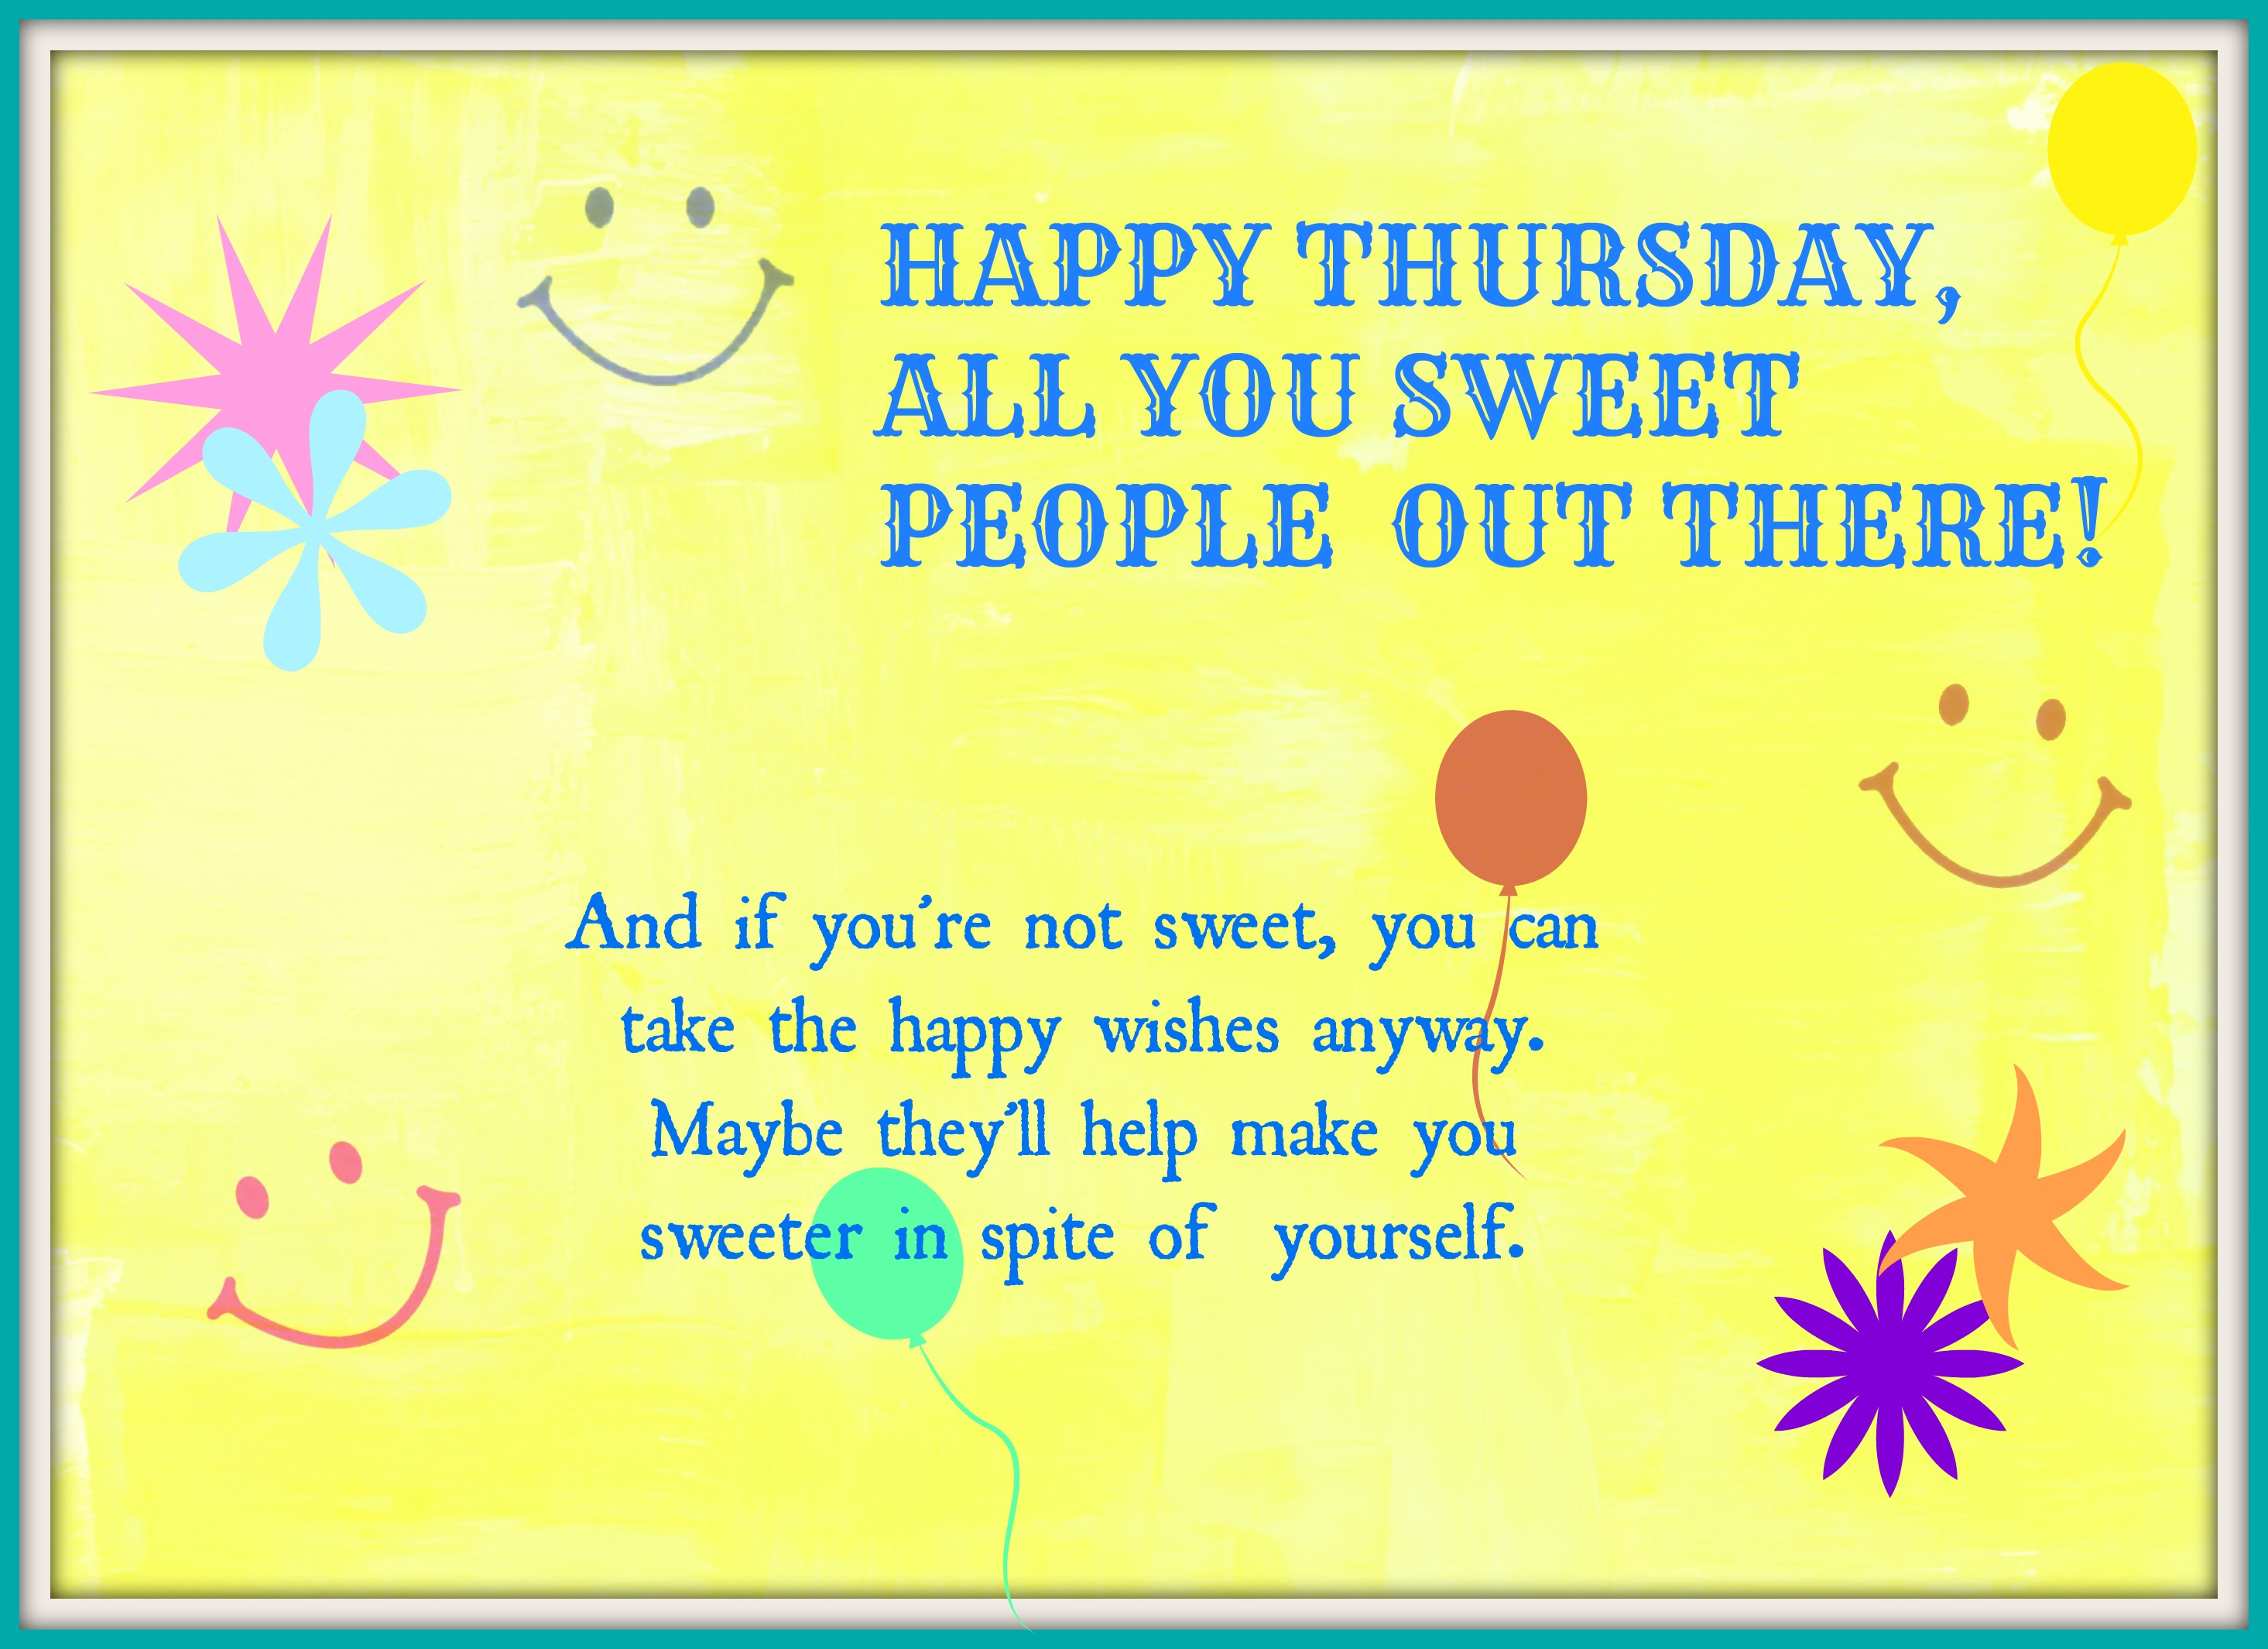 Thursday greetings a visit with sandra thursday greetings m4hsunfo